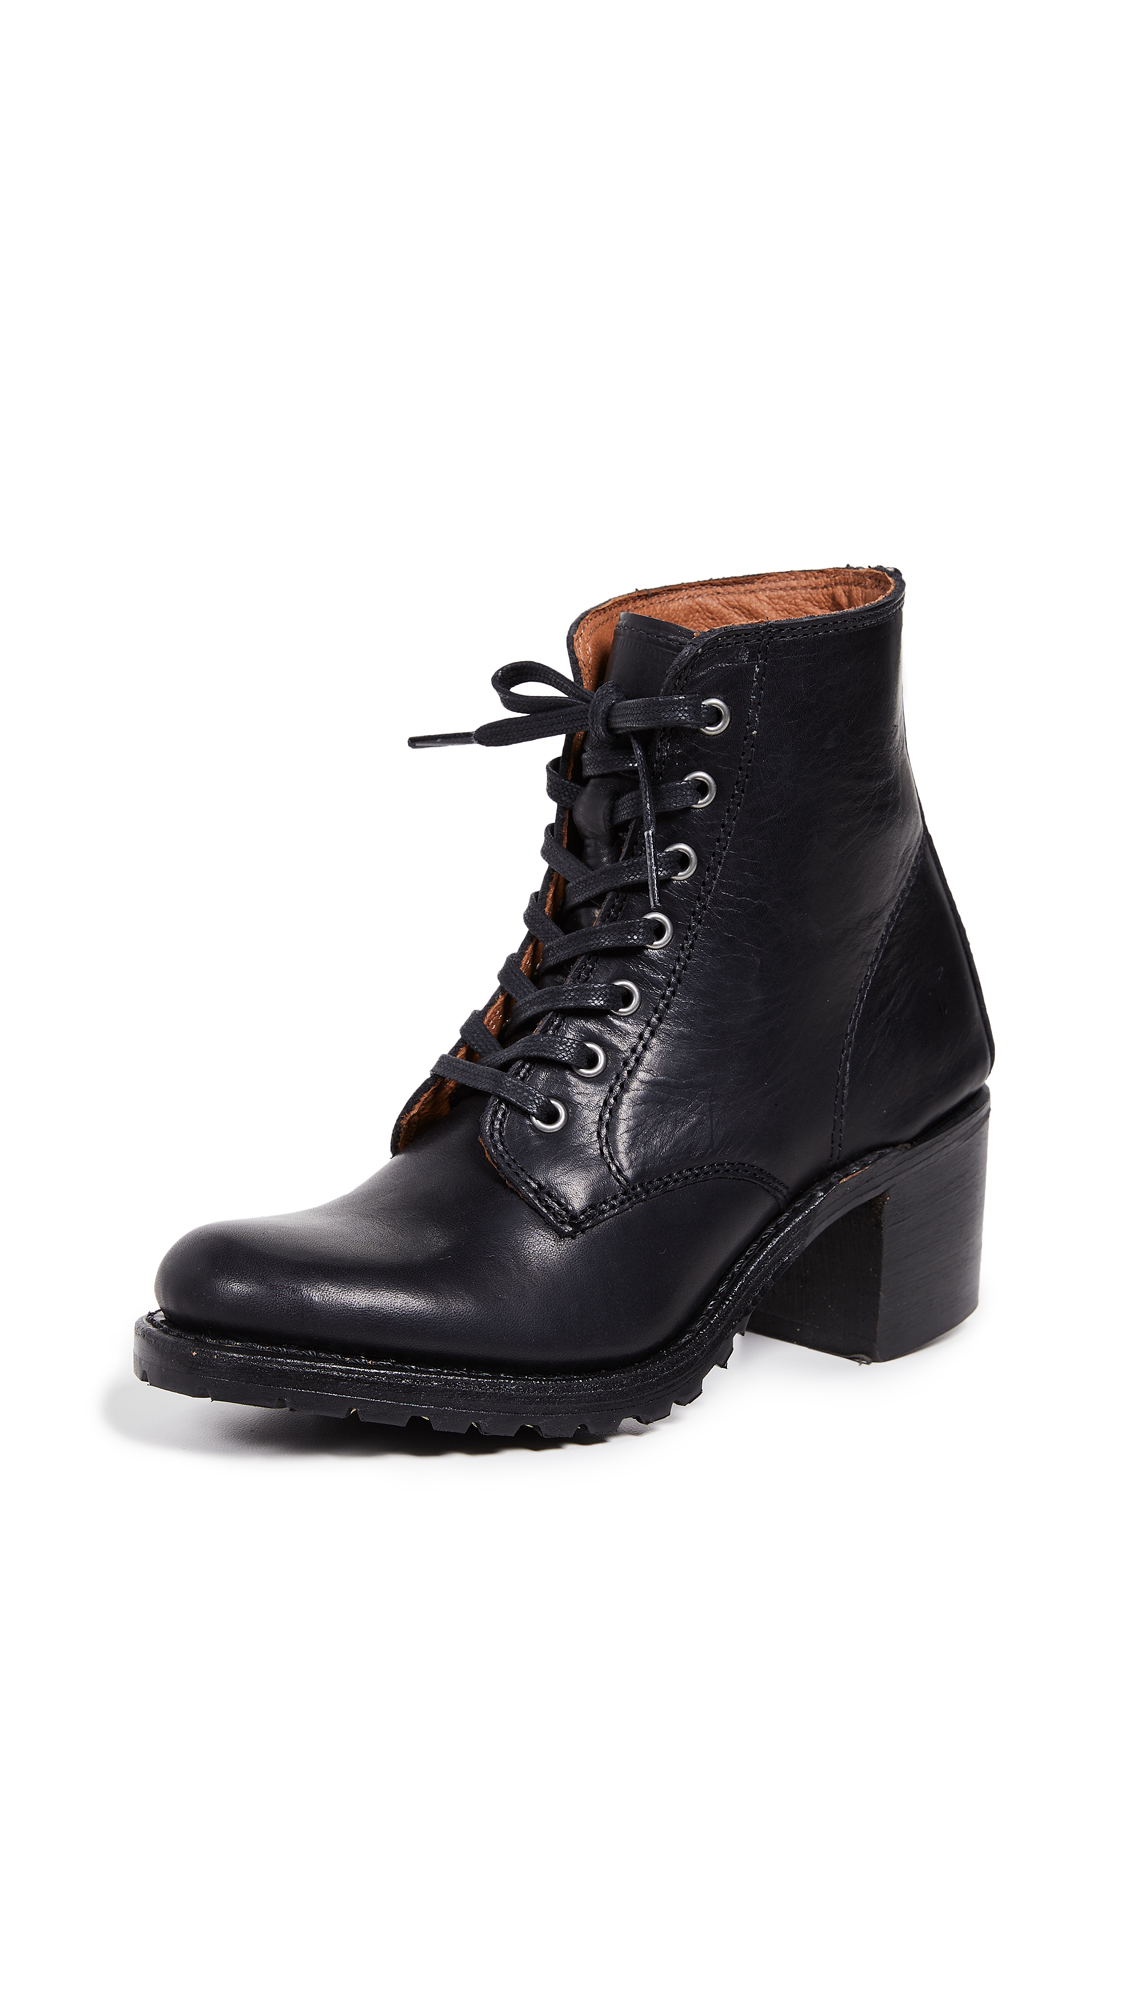 Frye Sabrina 6G Lace Up Boots – 40% Off Sale